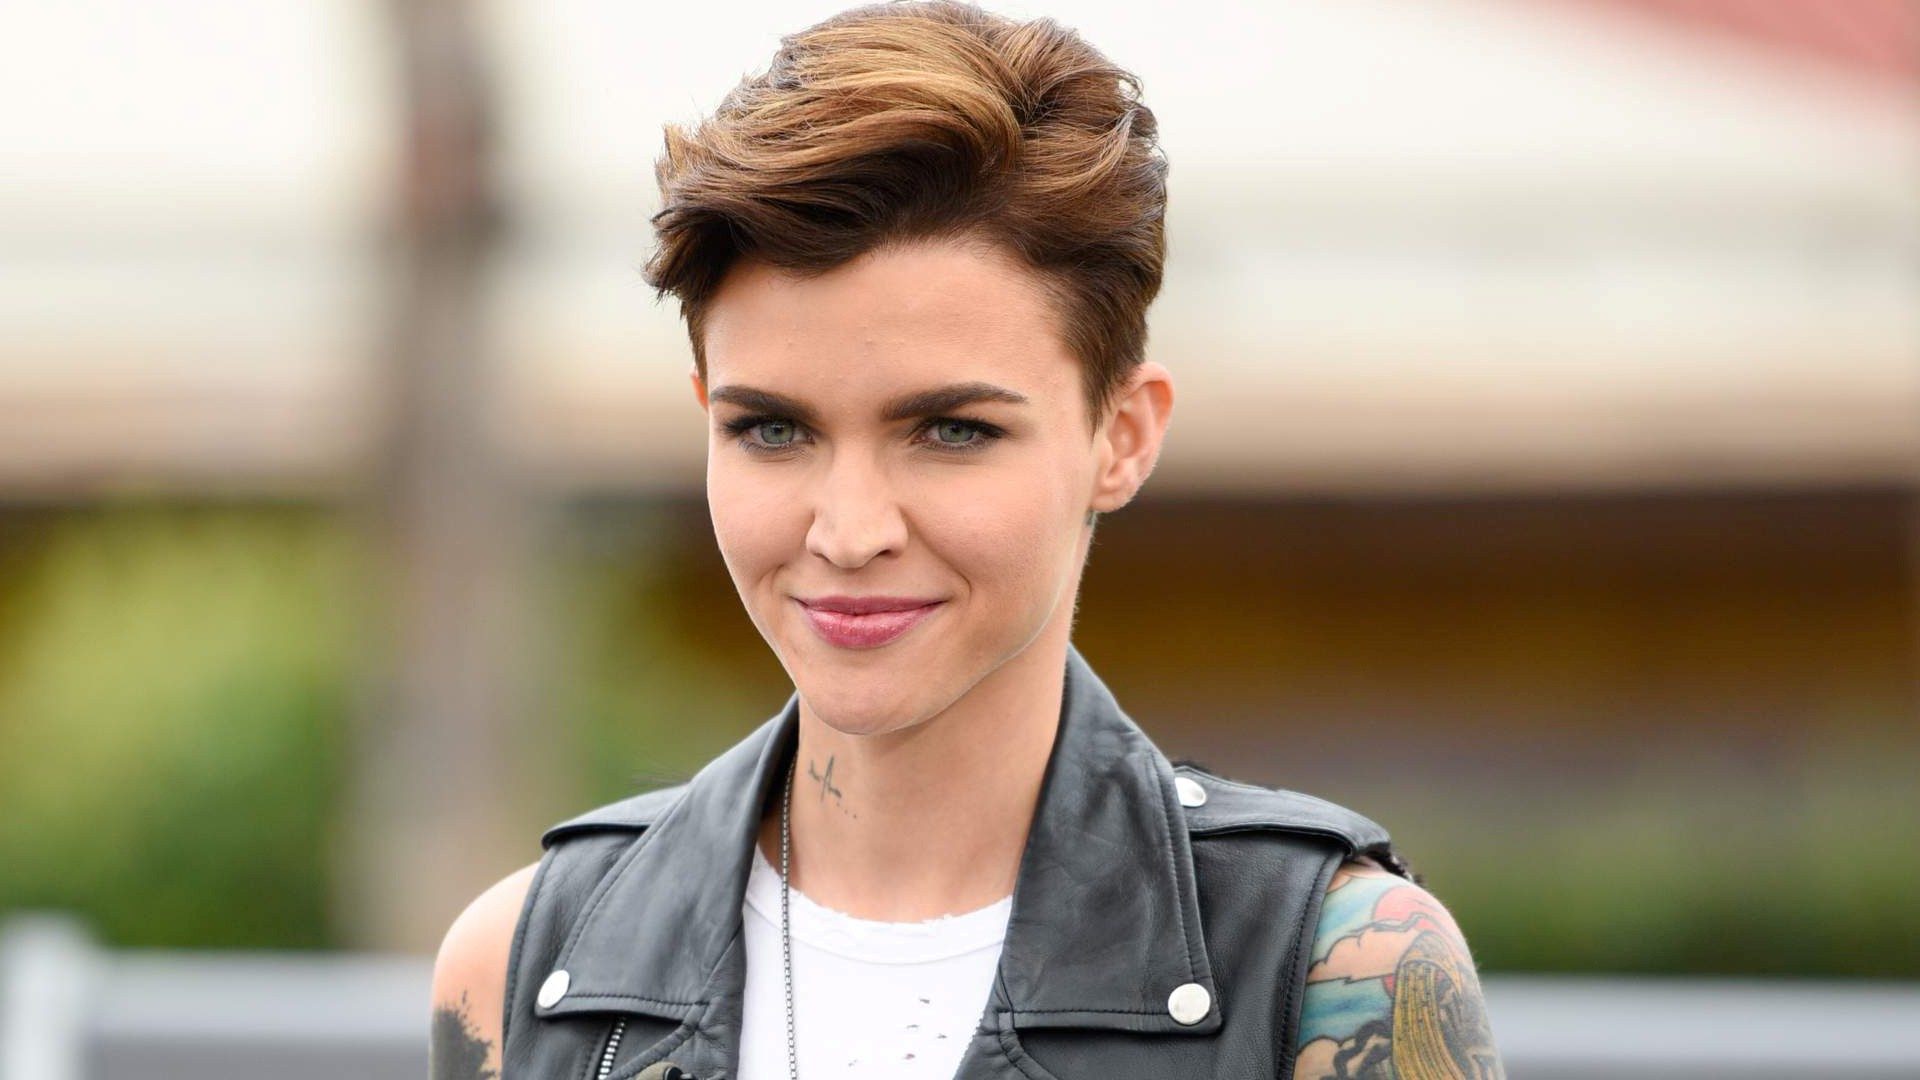 Hollywood Actress Ruby Rose In Short Hairstyle Hd Photo | Hd Wallpapers Intended For Ruby Rose Short Hairstyles (View 4 of 25)